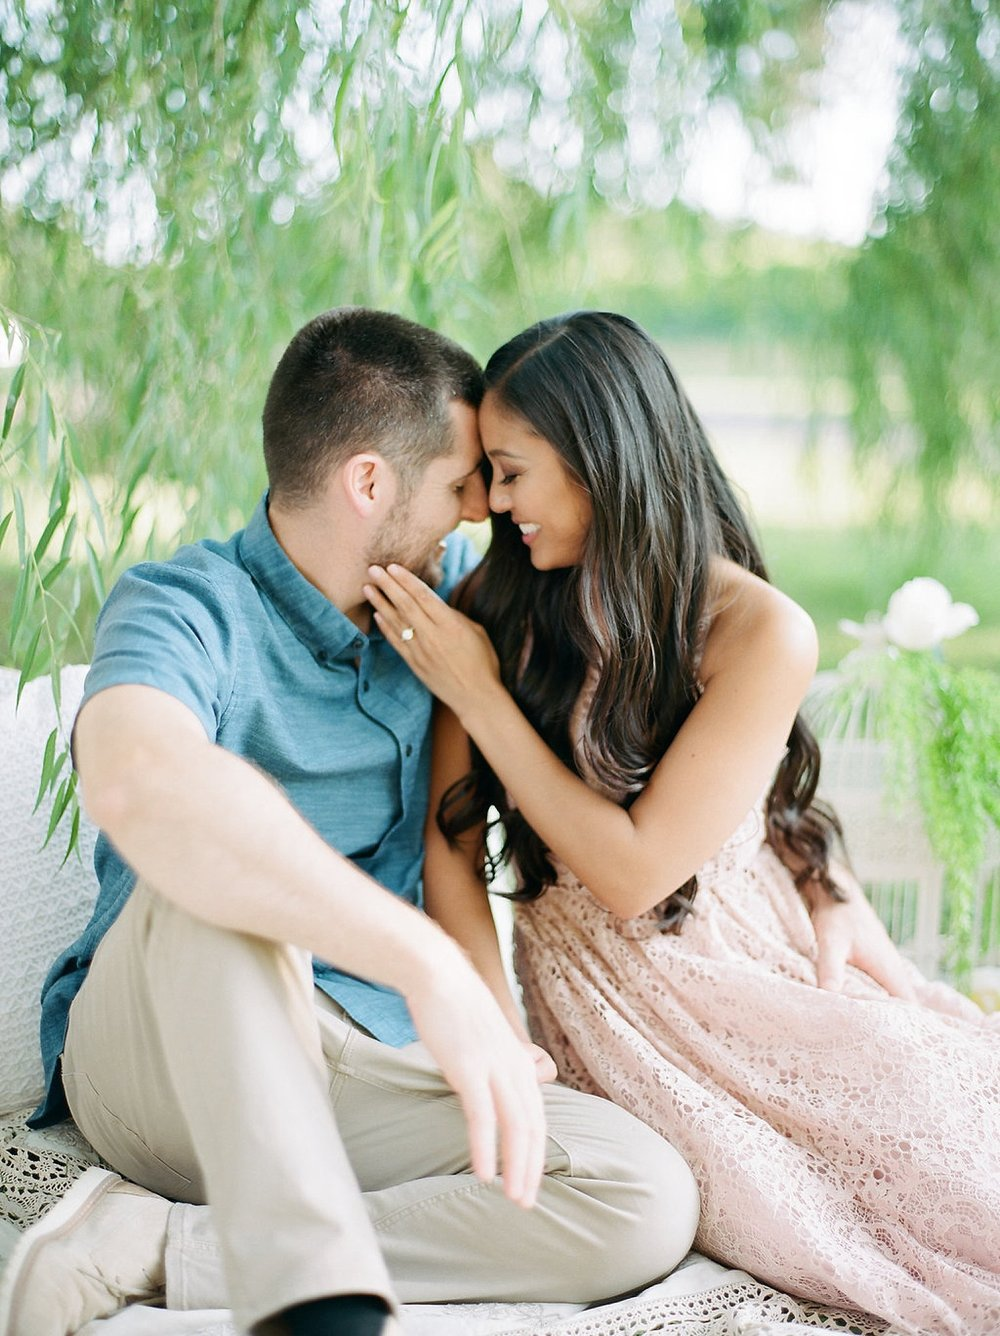 An Airy Summer Engagement Session at Willow Creek Winery in Cape May, NJ by Magdalena Studios_0015.jpg